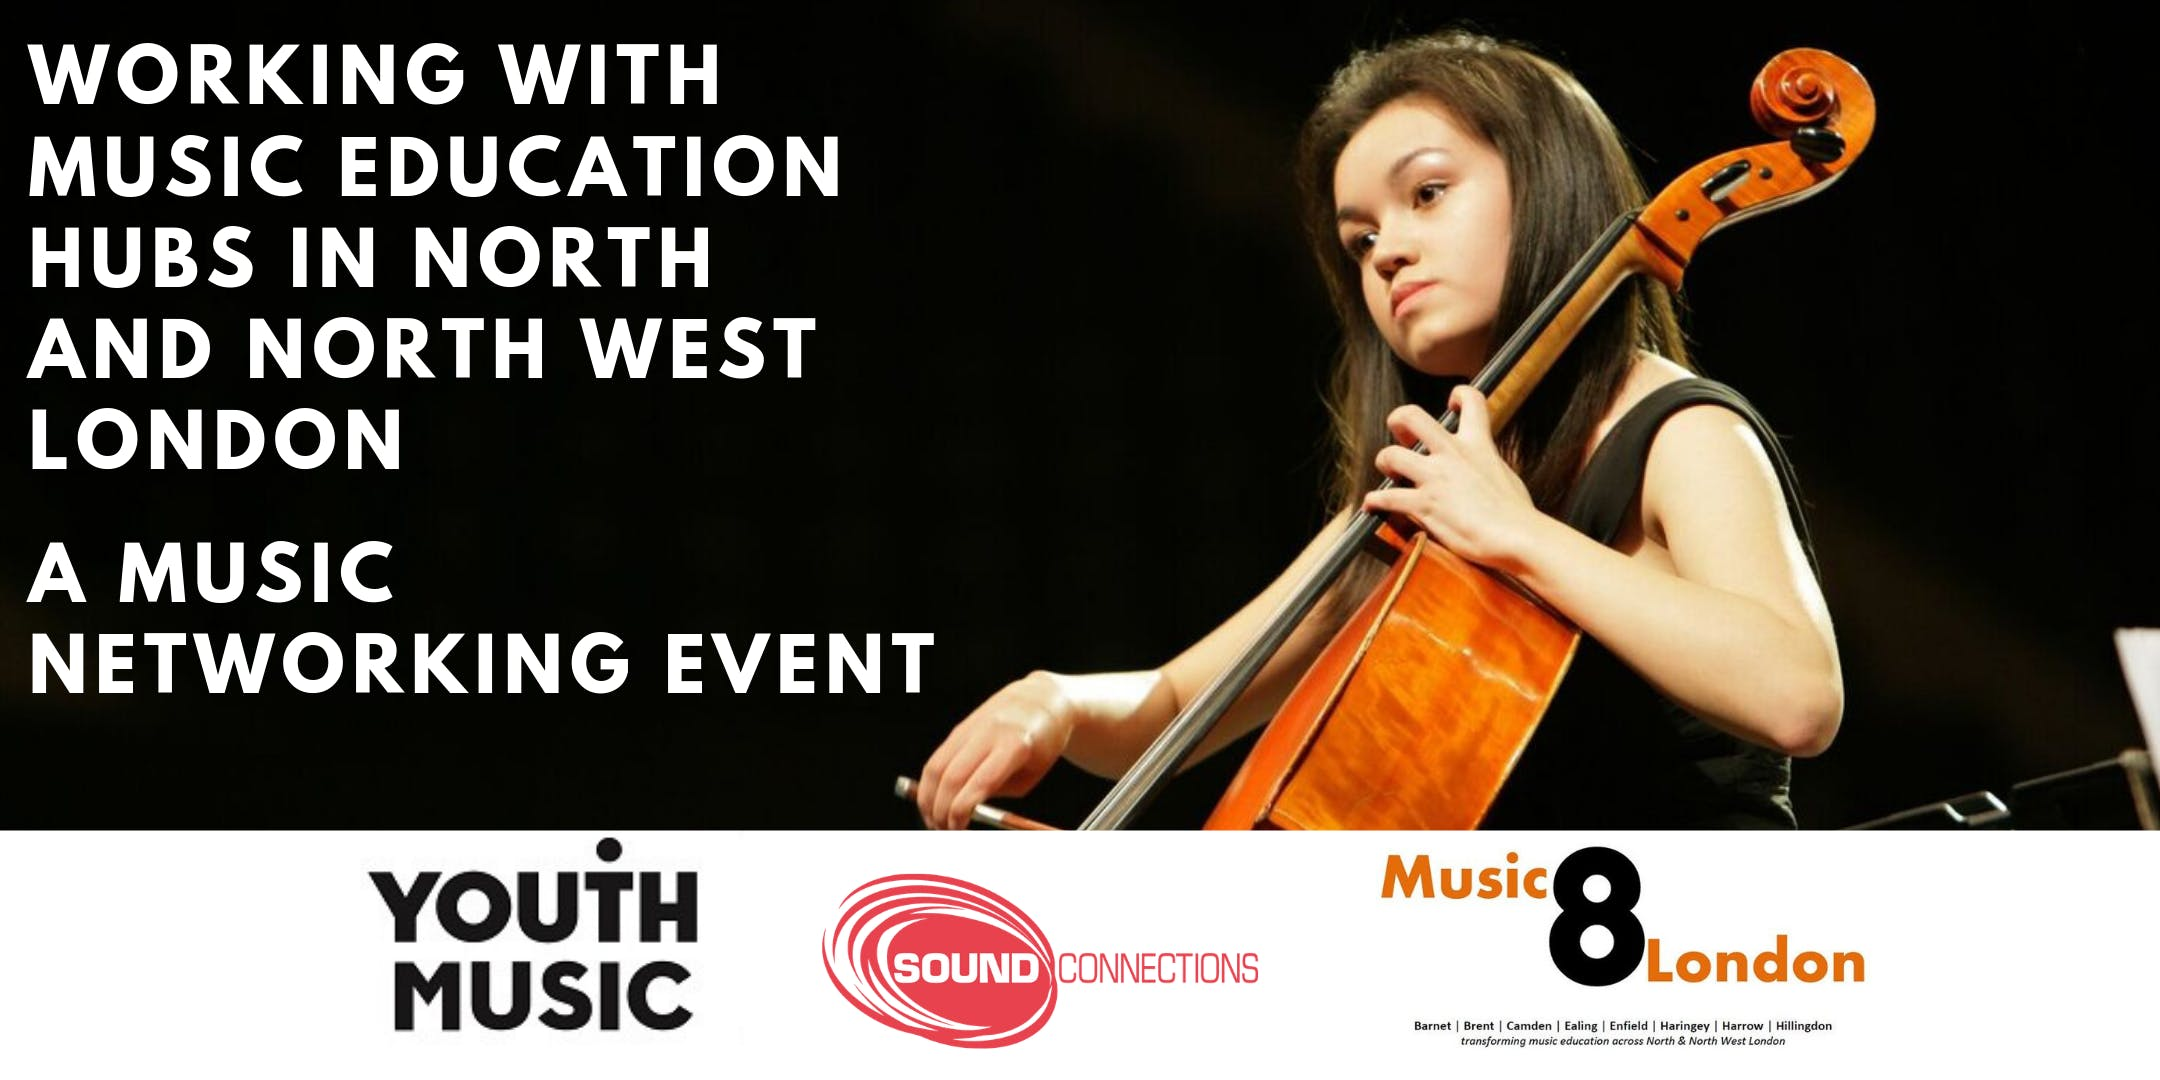 Working With Music Education Hubs in North and North West London: A Music Education Networking Event